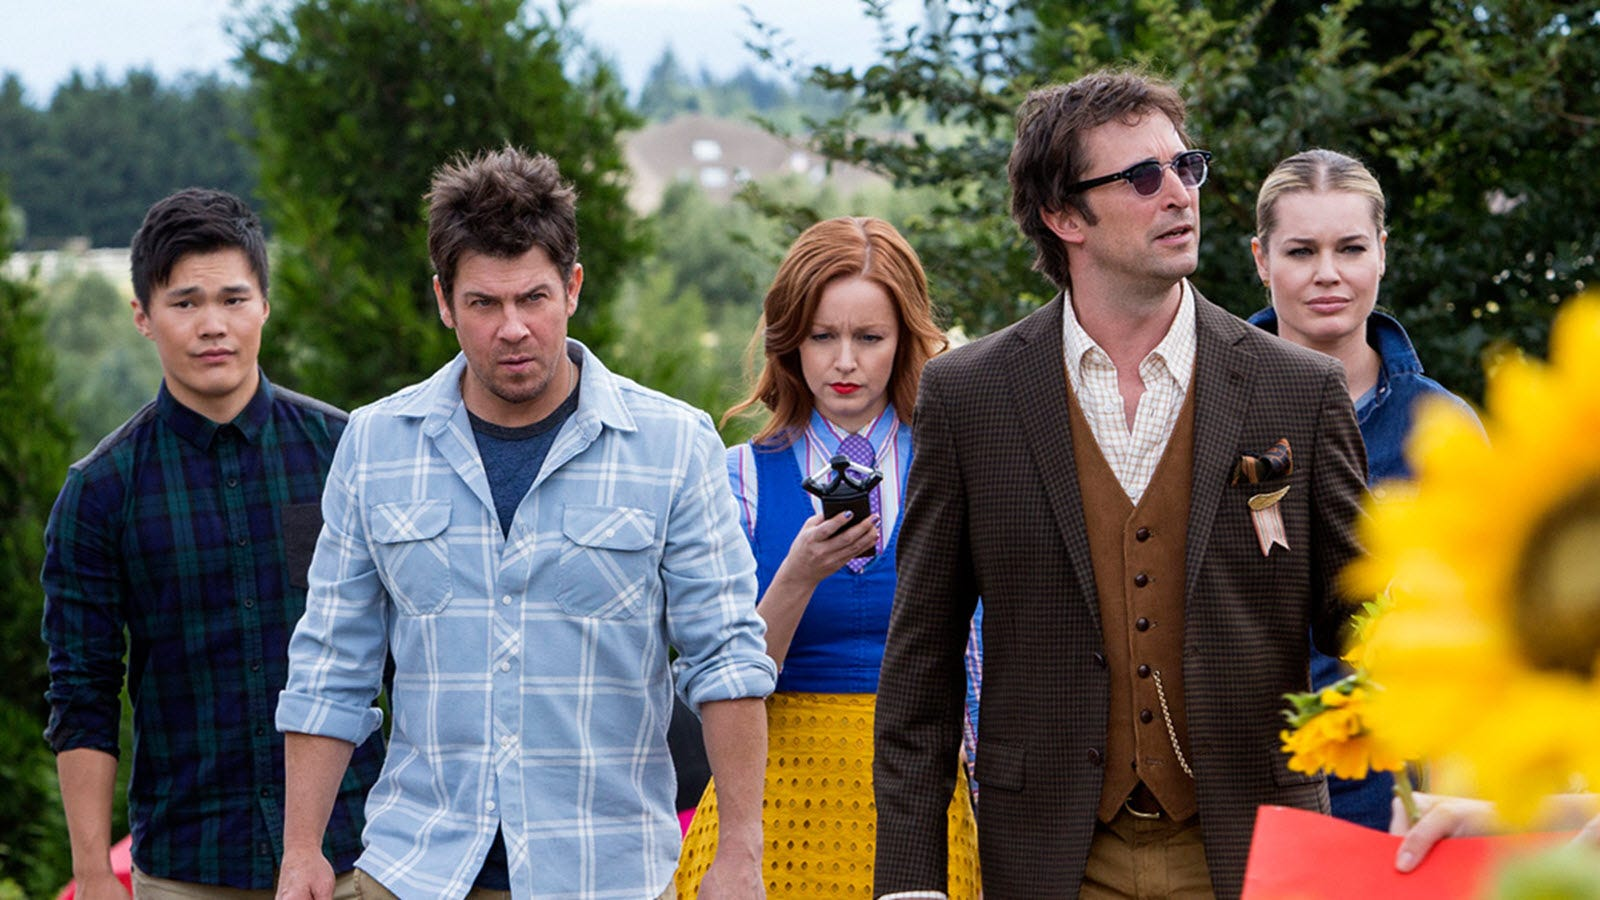 The main characters from The Librarians, one holding a 'Ghostbusters' style handscanner.